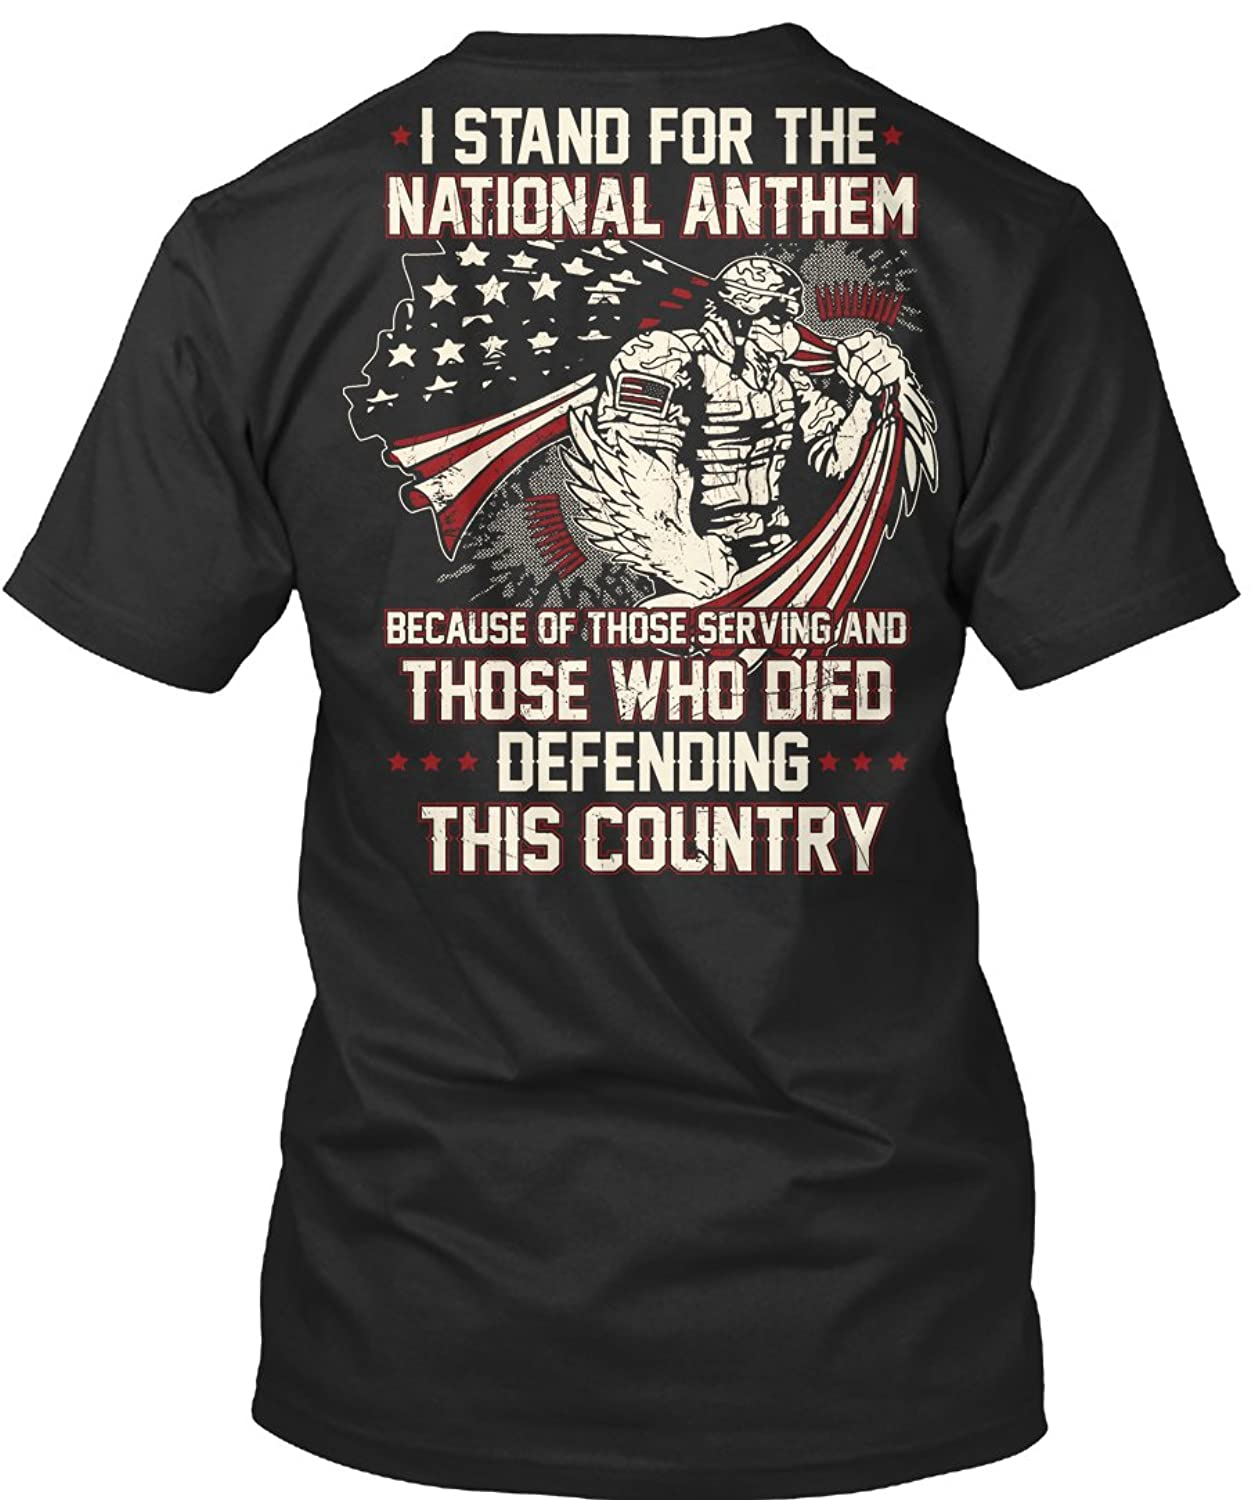 d176be07ed9 Teespring Unisex Veteran- I Stand For The National Anthem BELLA+CANVAS  Premium Jersey V